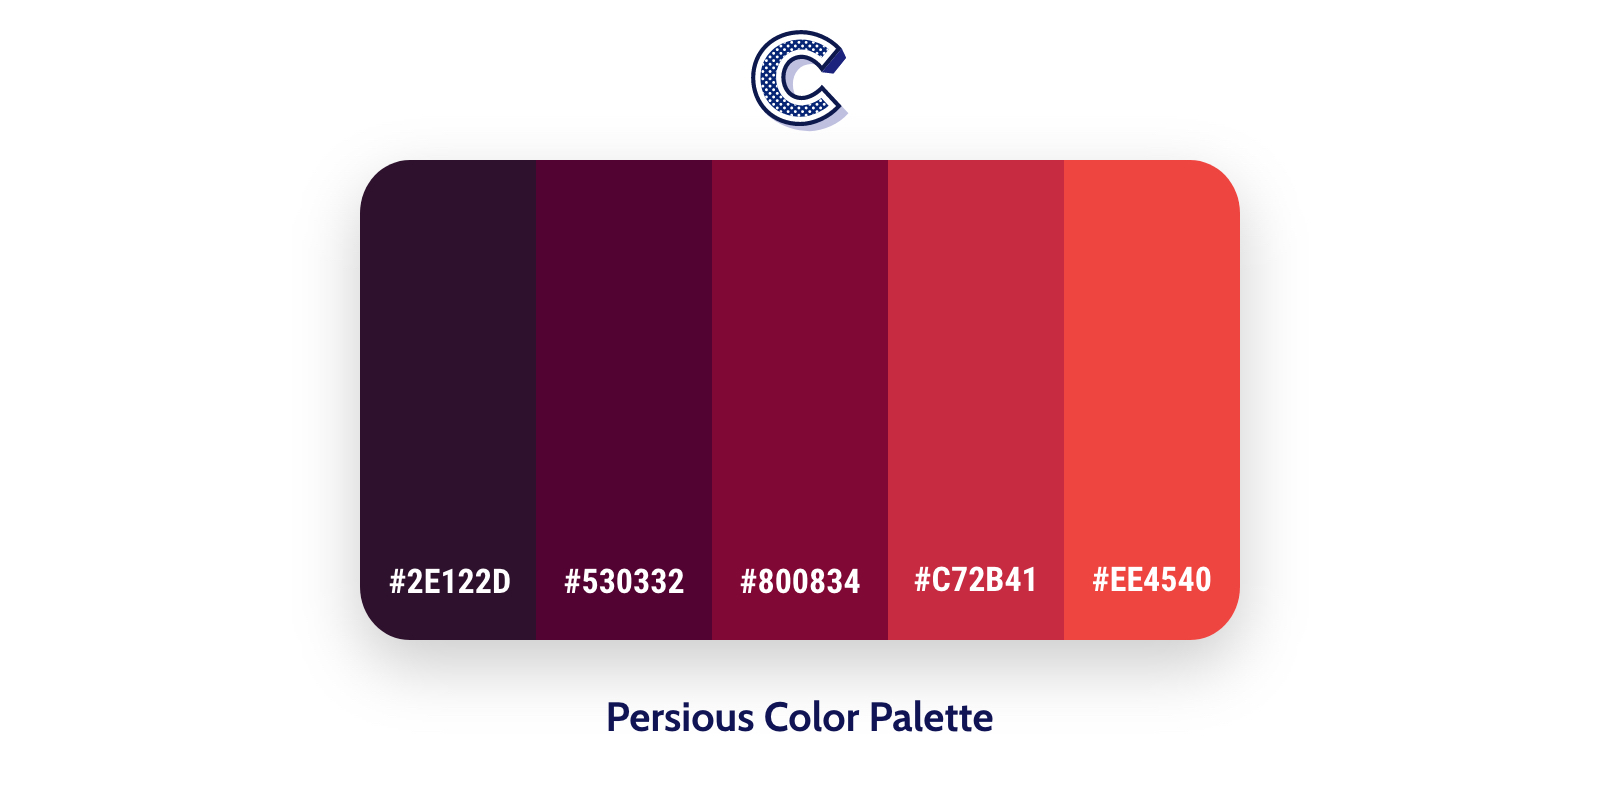 the featured image of persious color palette